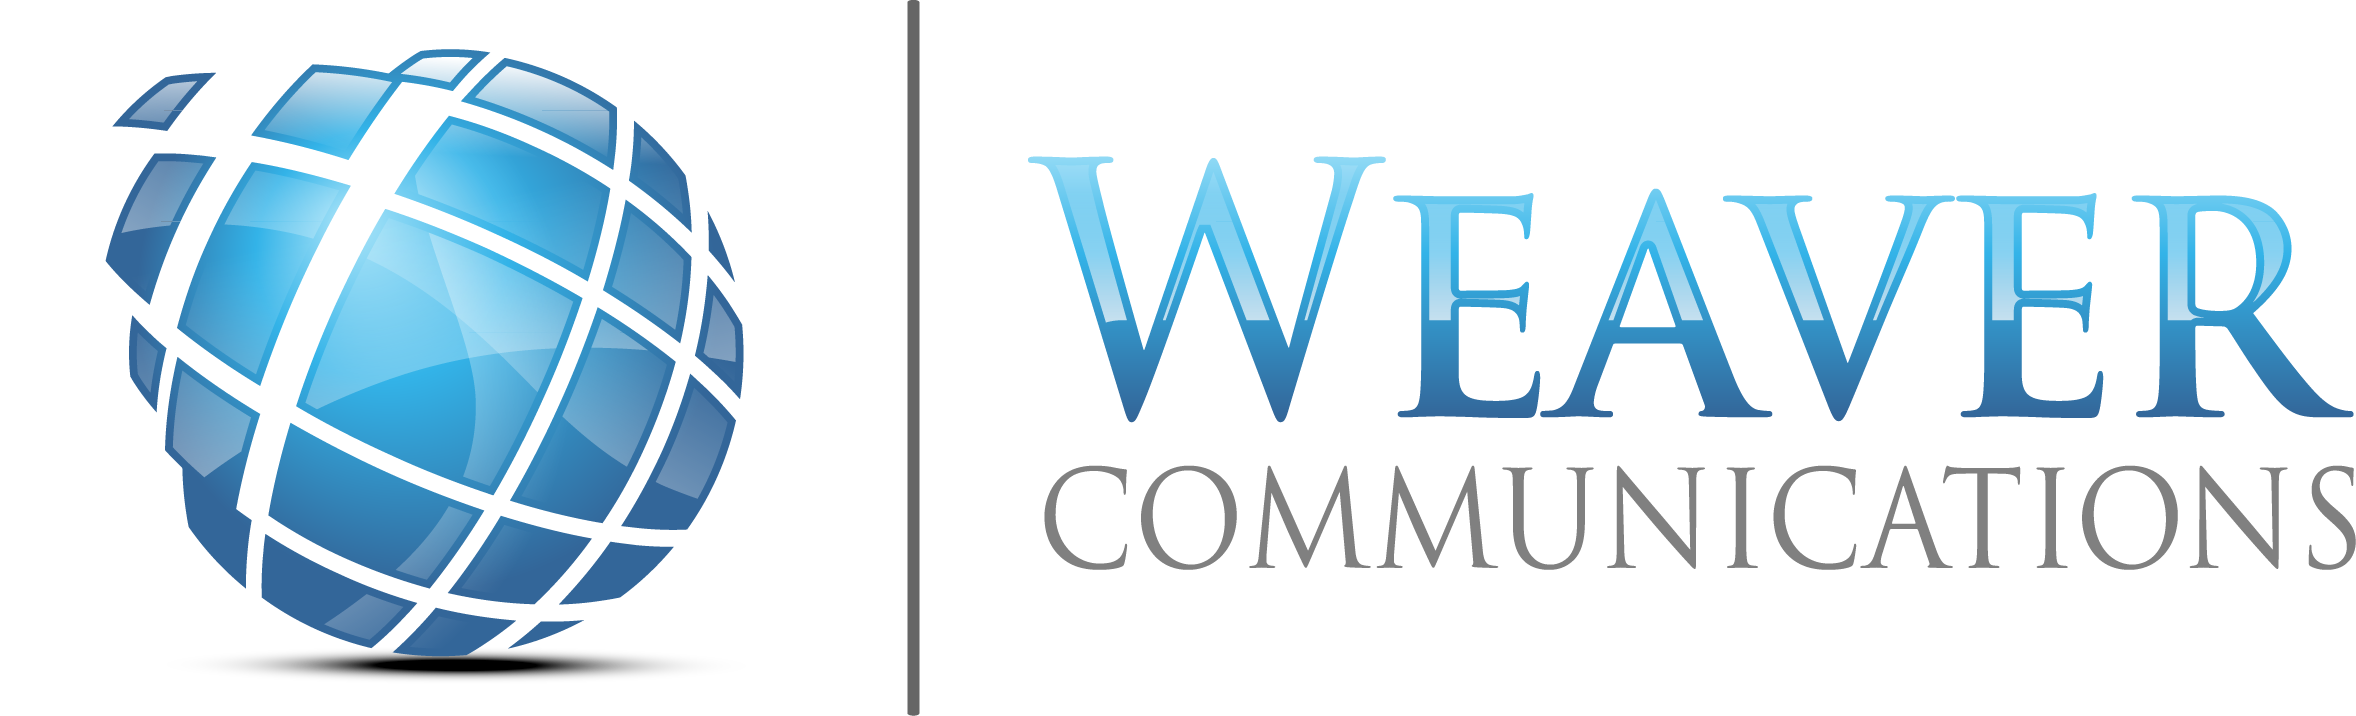 Weaver Communications Small Business Lead Generation